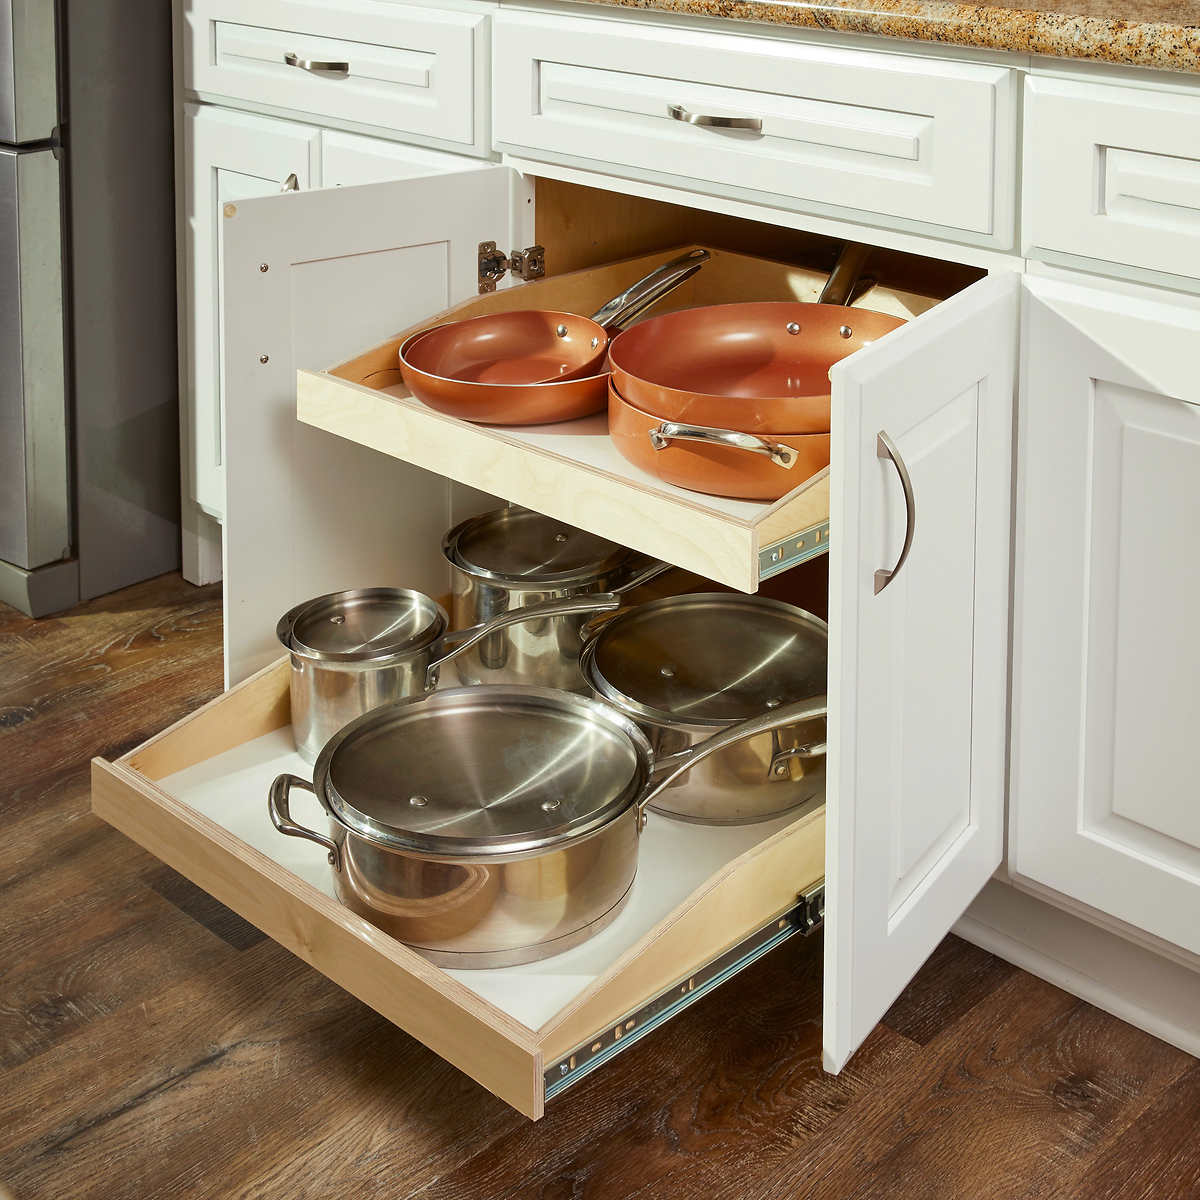 Shelf For Kitchen Made To Fit Slide Out Shelves For Existing Cabinets By Slide A Shelf